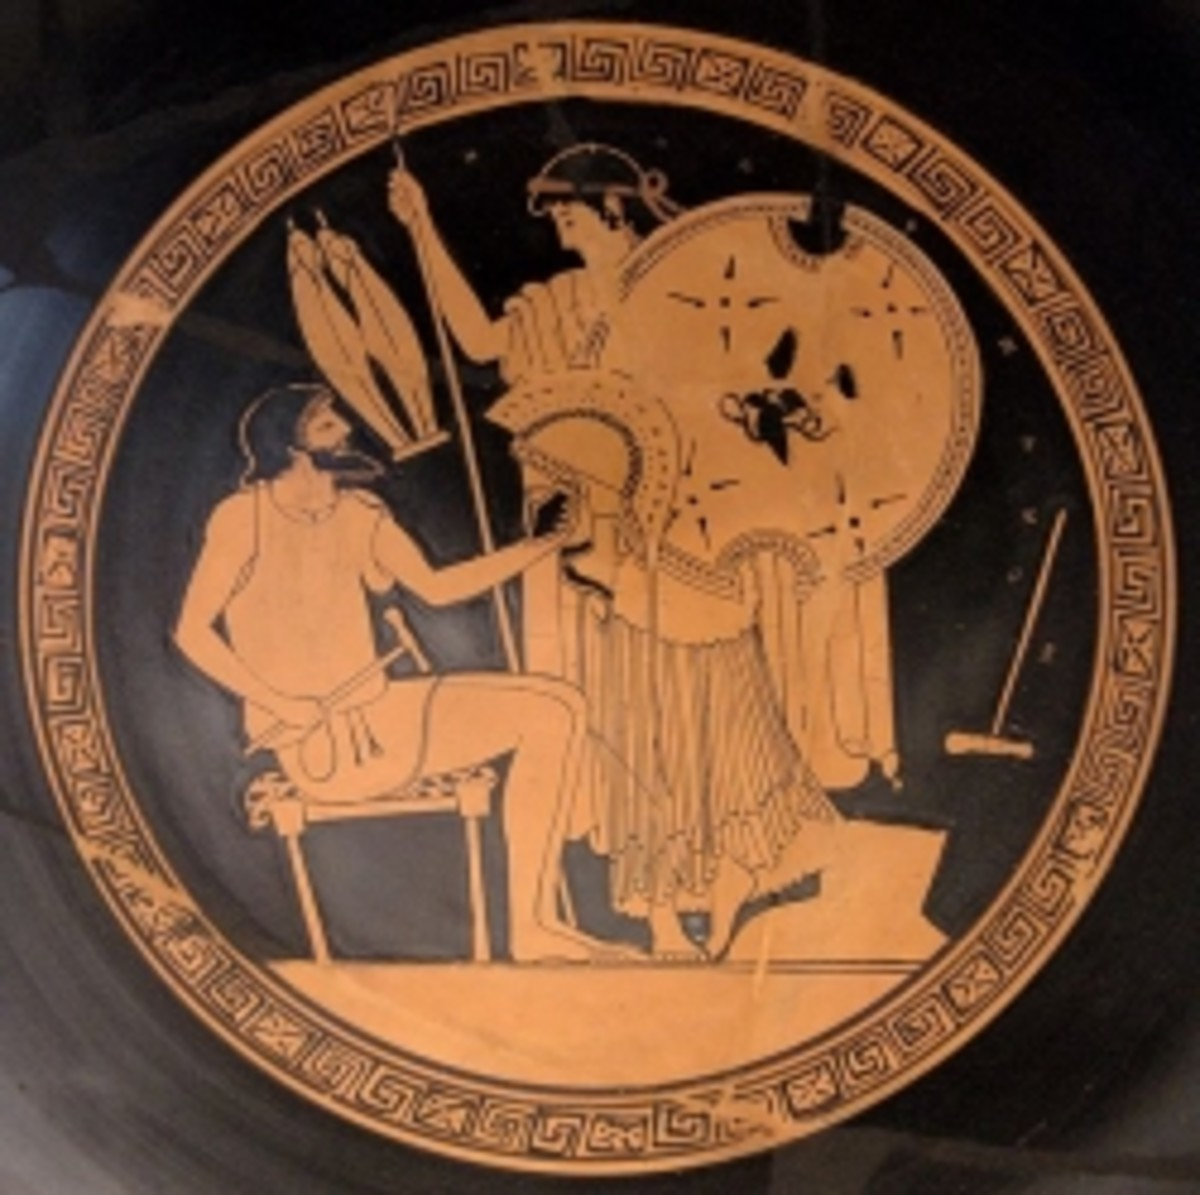 Thetis picks up new armor for her son Achilles (scene from the Iliad)